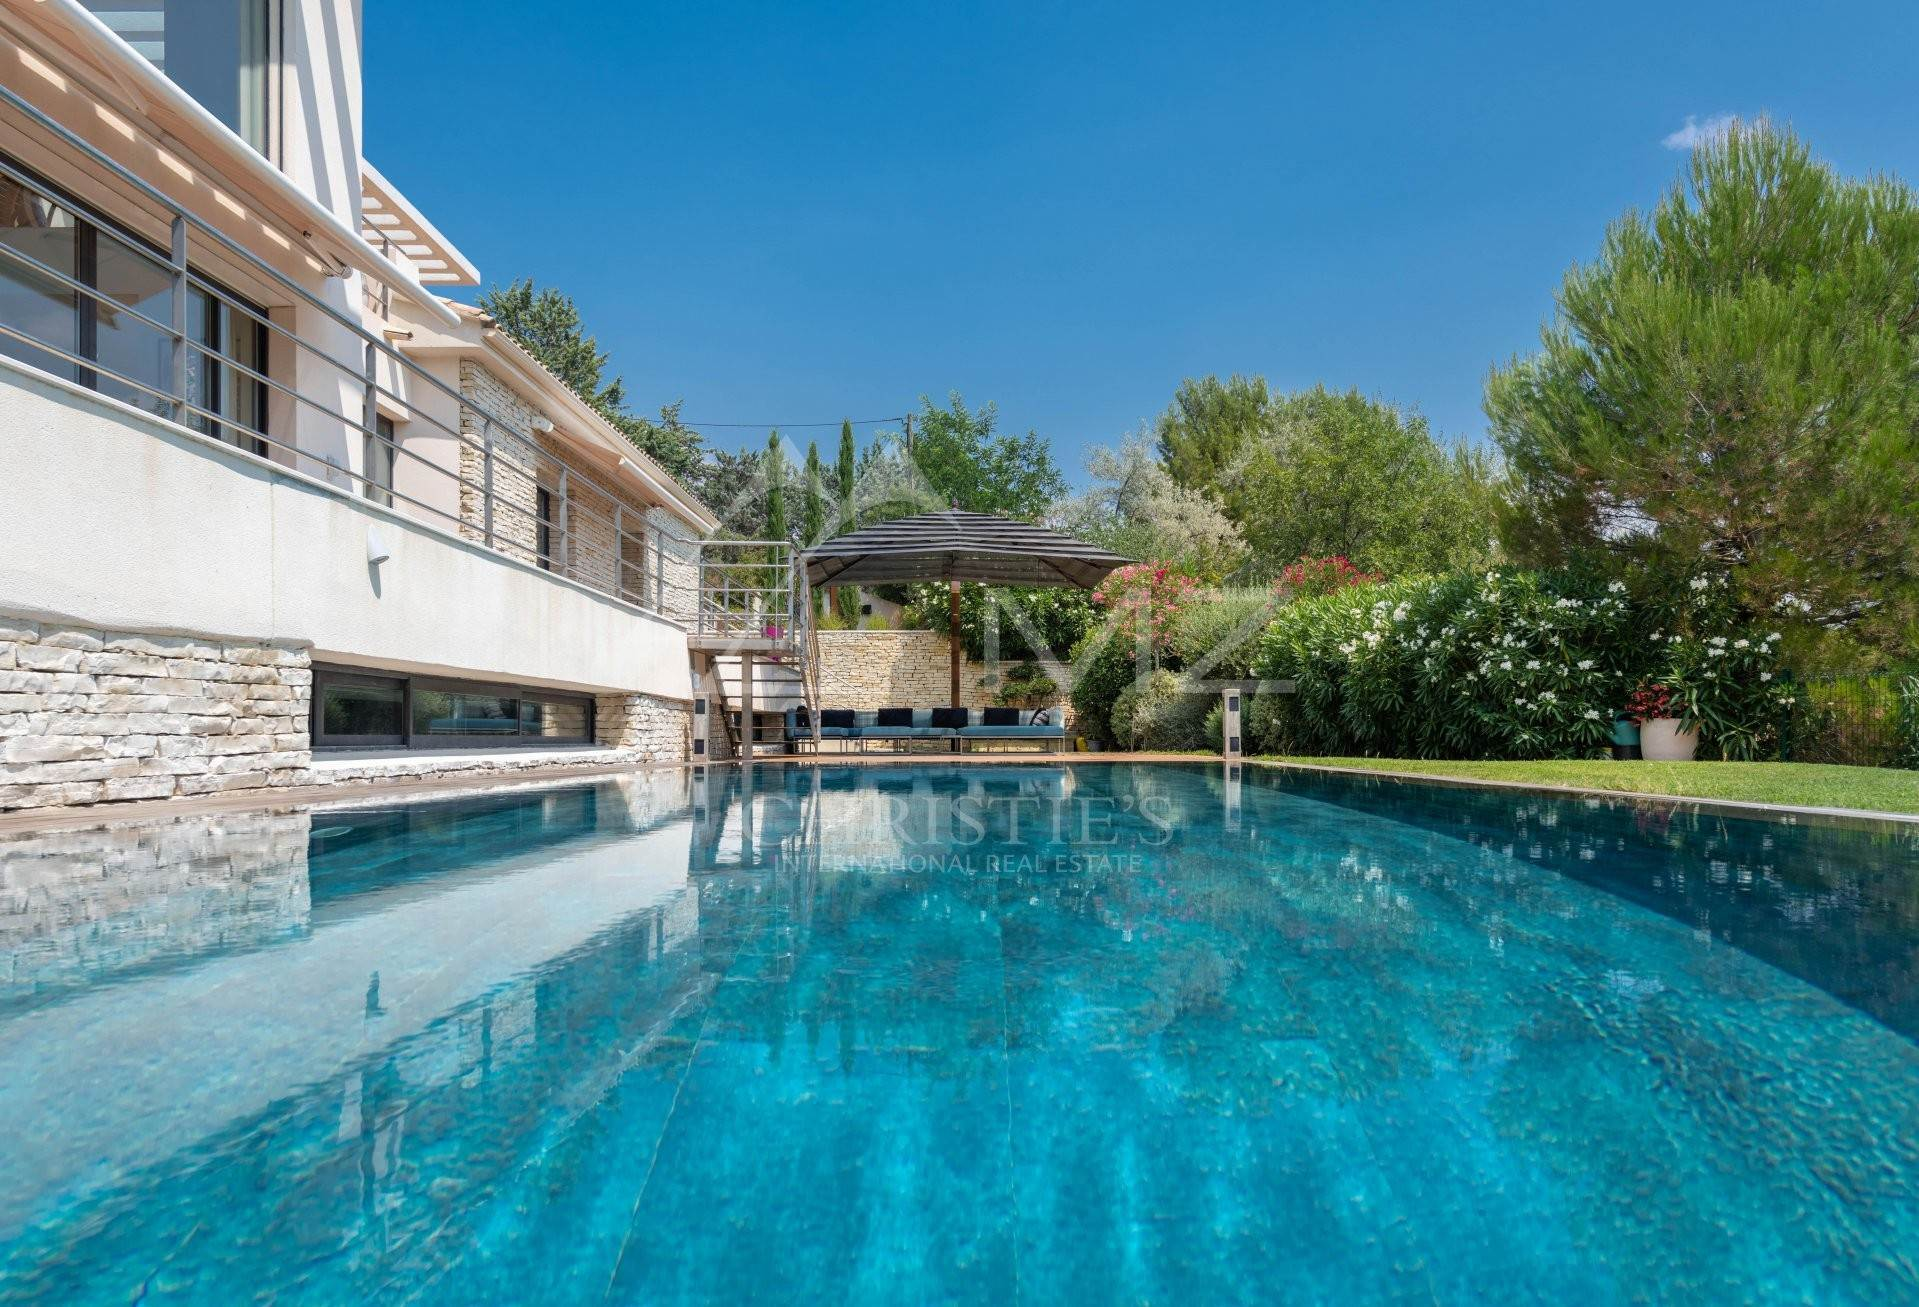 別荘 / タウンハウス at Close to Aix-en-Provence - Beautiful contemporary villa Aix-en-Provence, Bouches-du-Rhône,13090 フランス